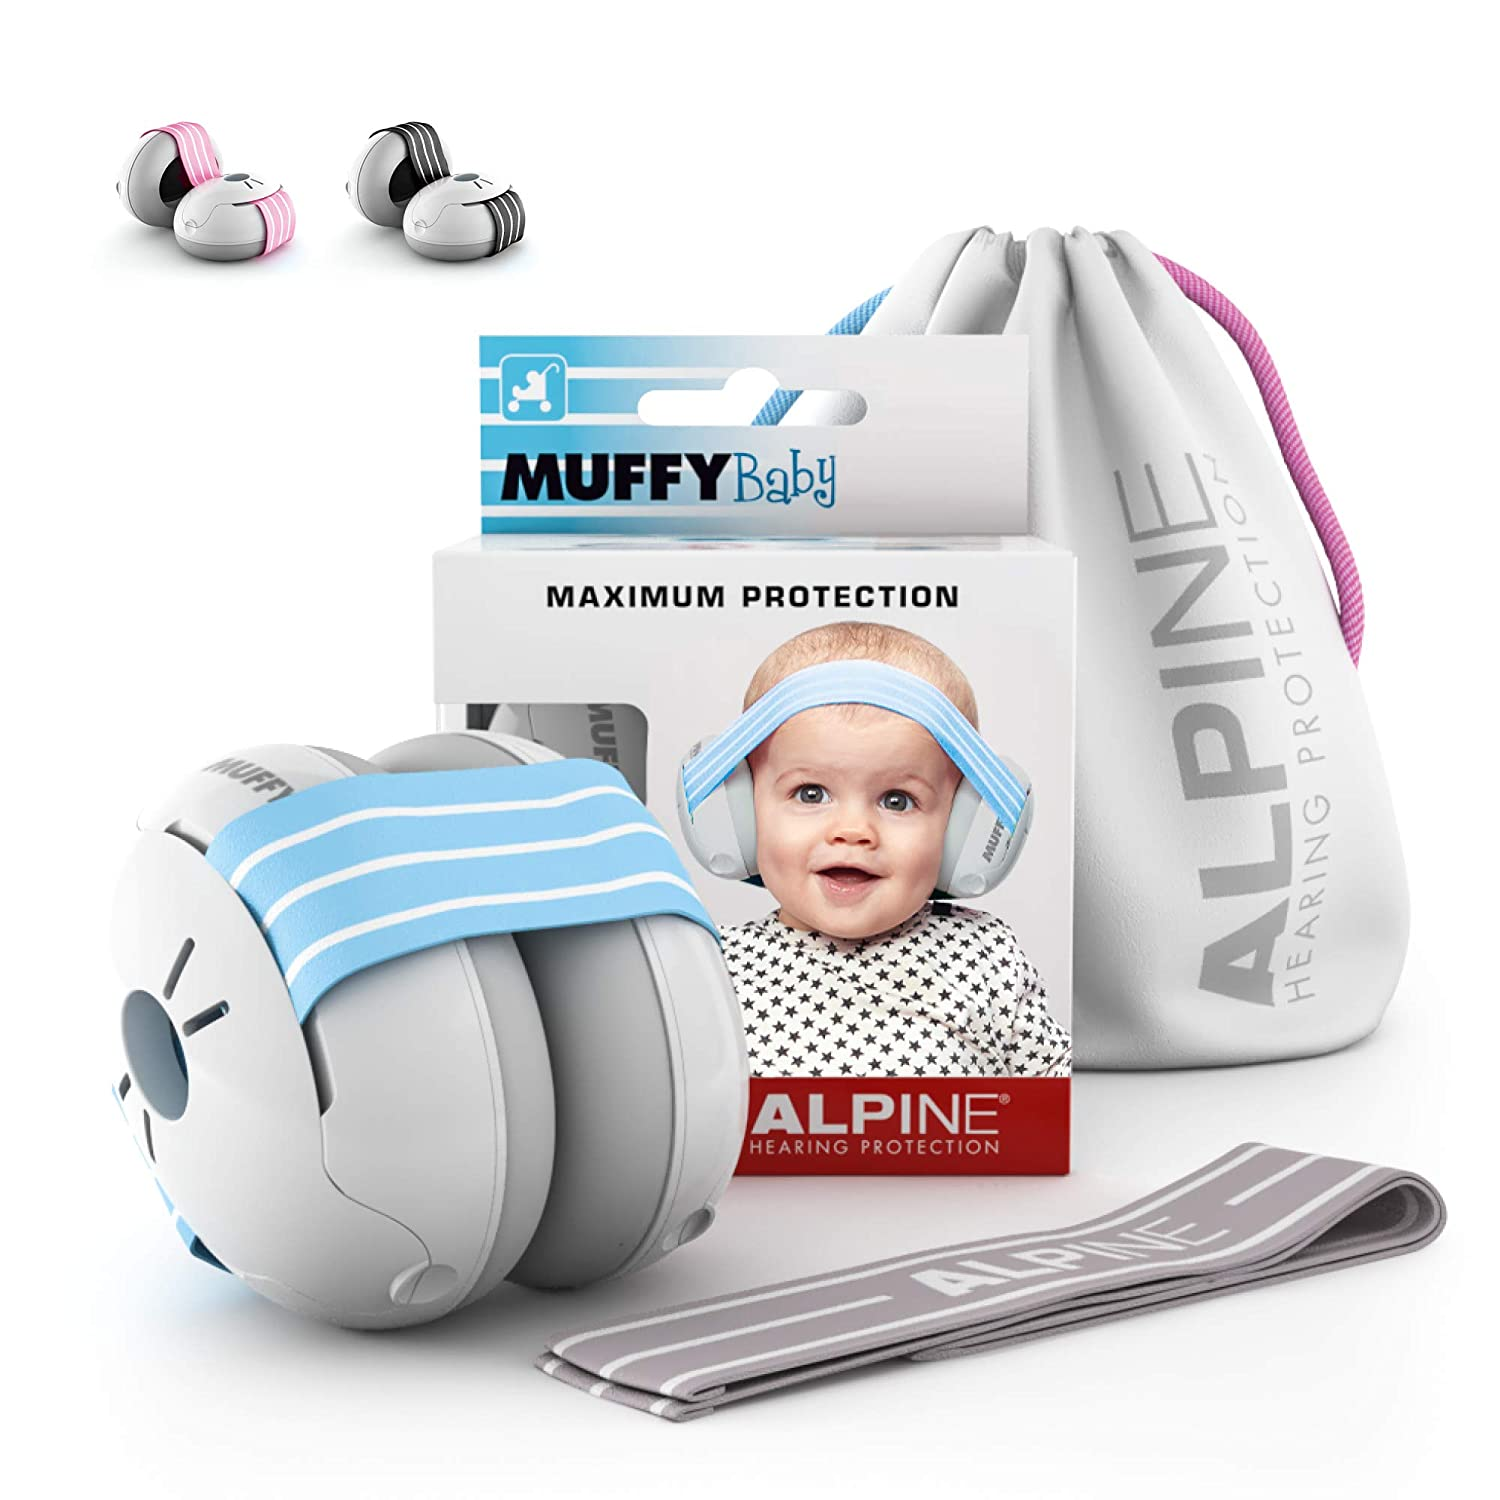 Alpine Muffy Baby Ear Protection for Newborn and Babies 3 - 36 Months – Noise Reduction Earmuffs for Toddlers and Children – Comfortable Infant Ear Muffs Prevent Hearing Damage & Improve Sleep, Blue